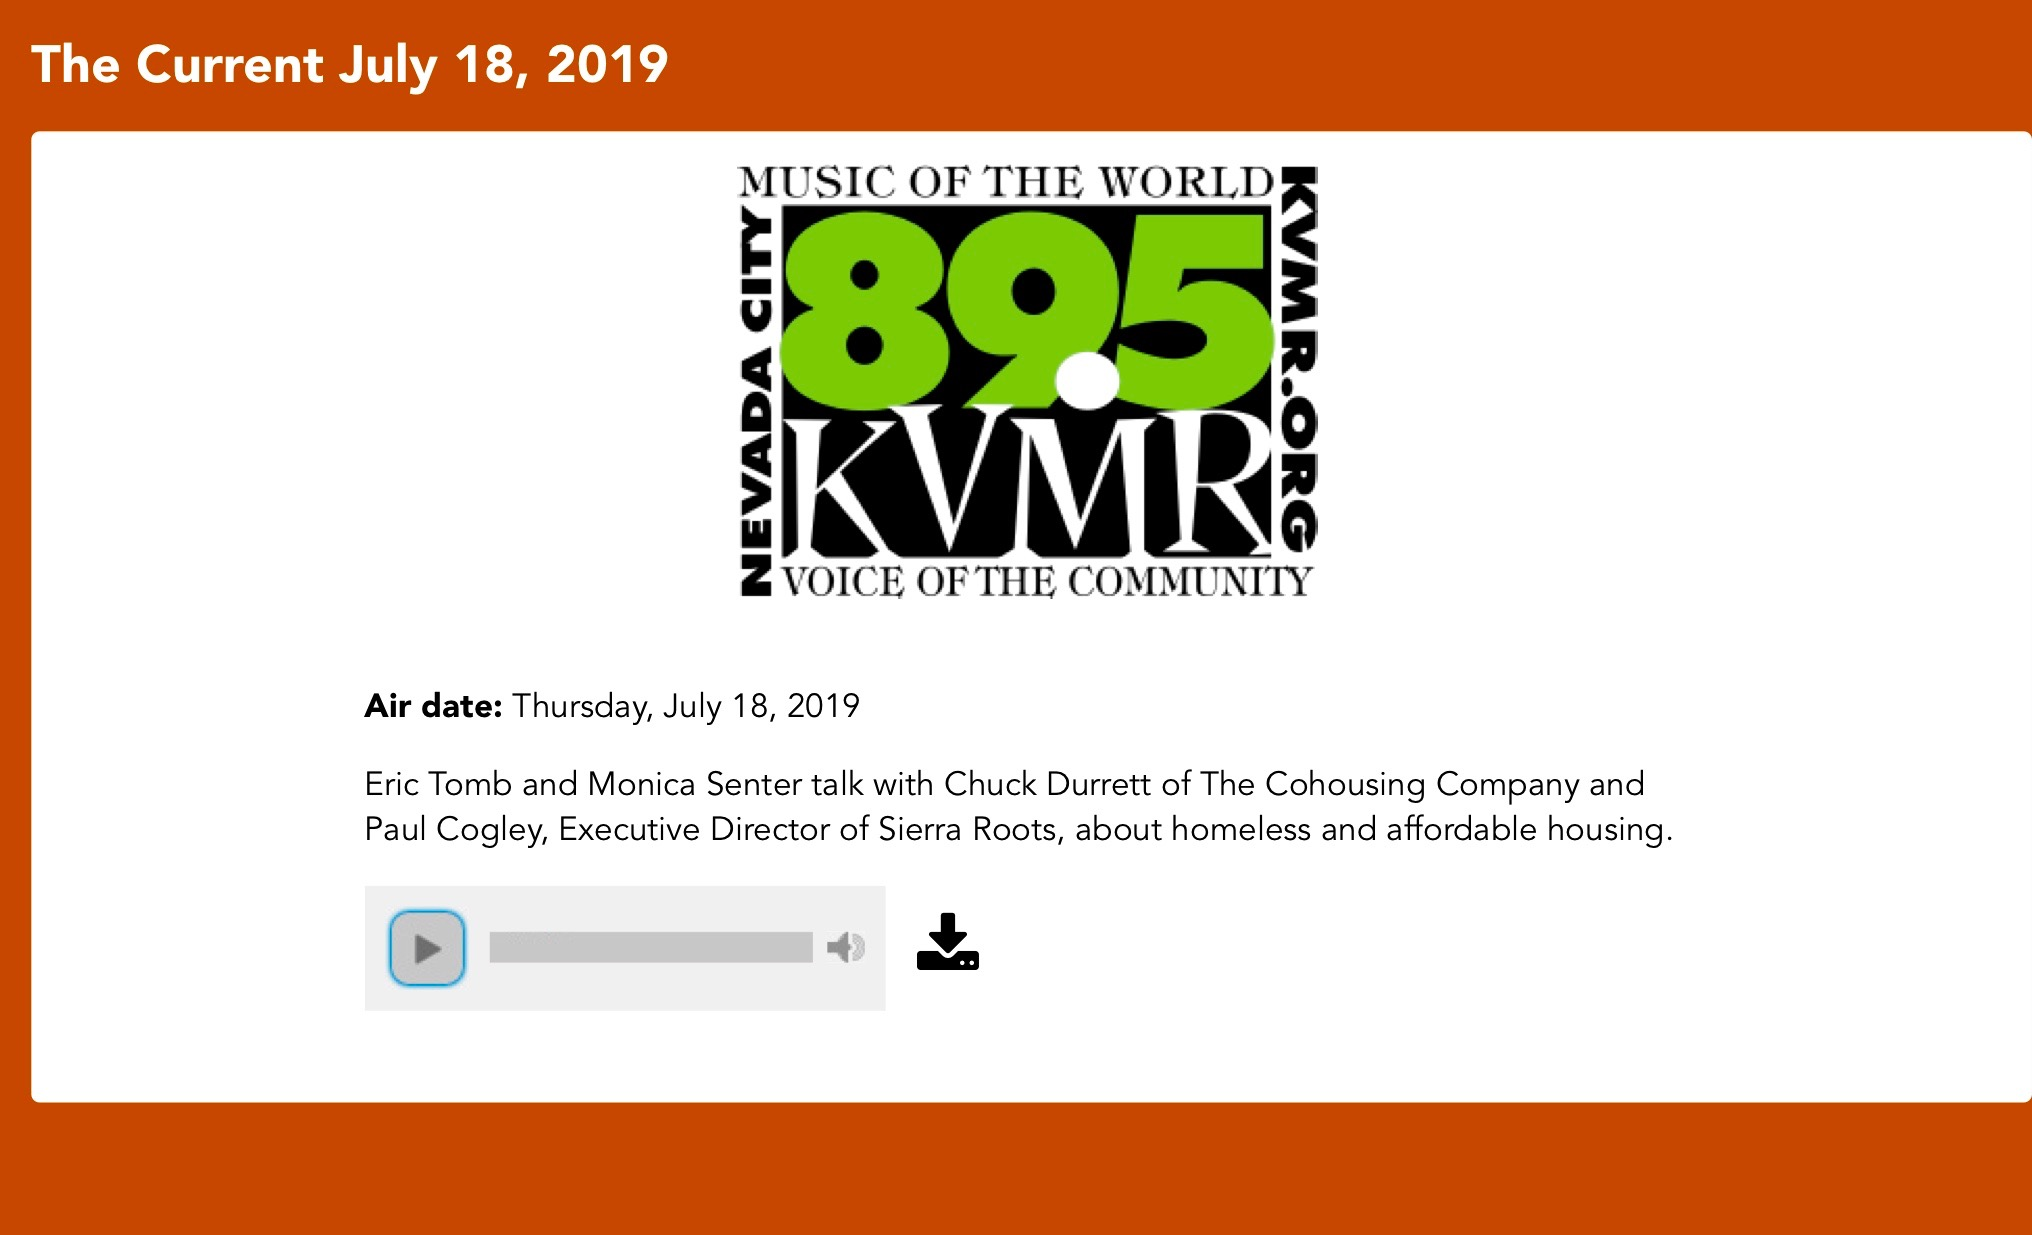 The Current July 18, 2019 | KVMR.jpg